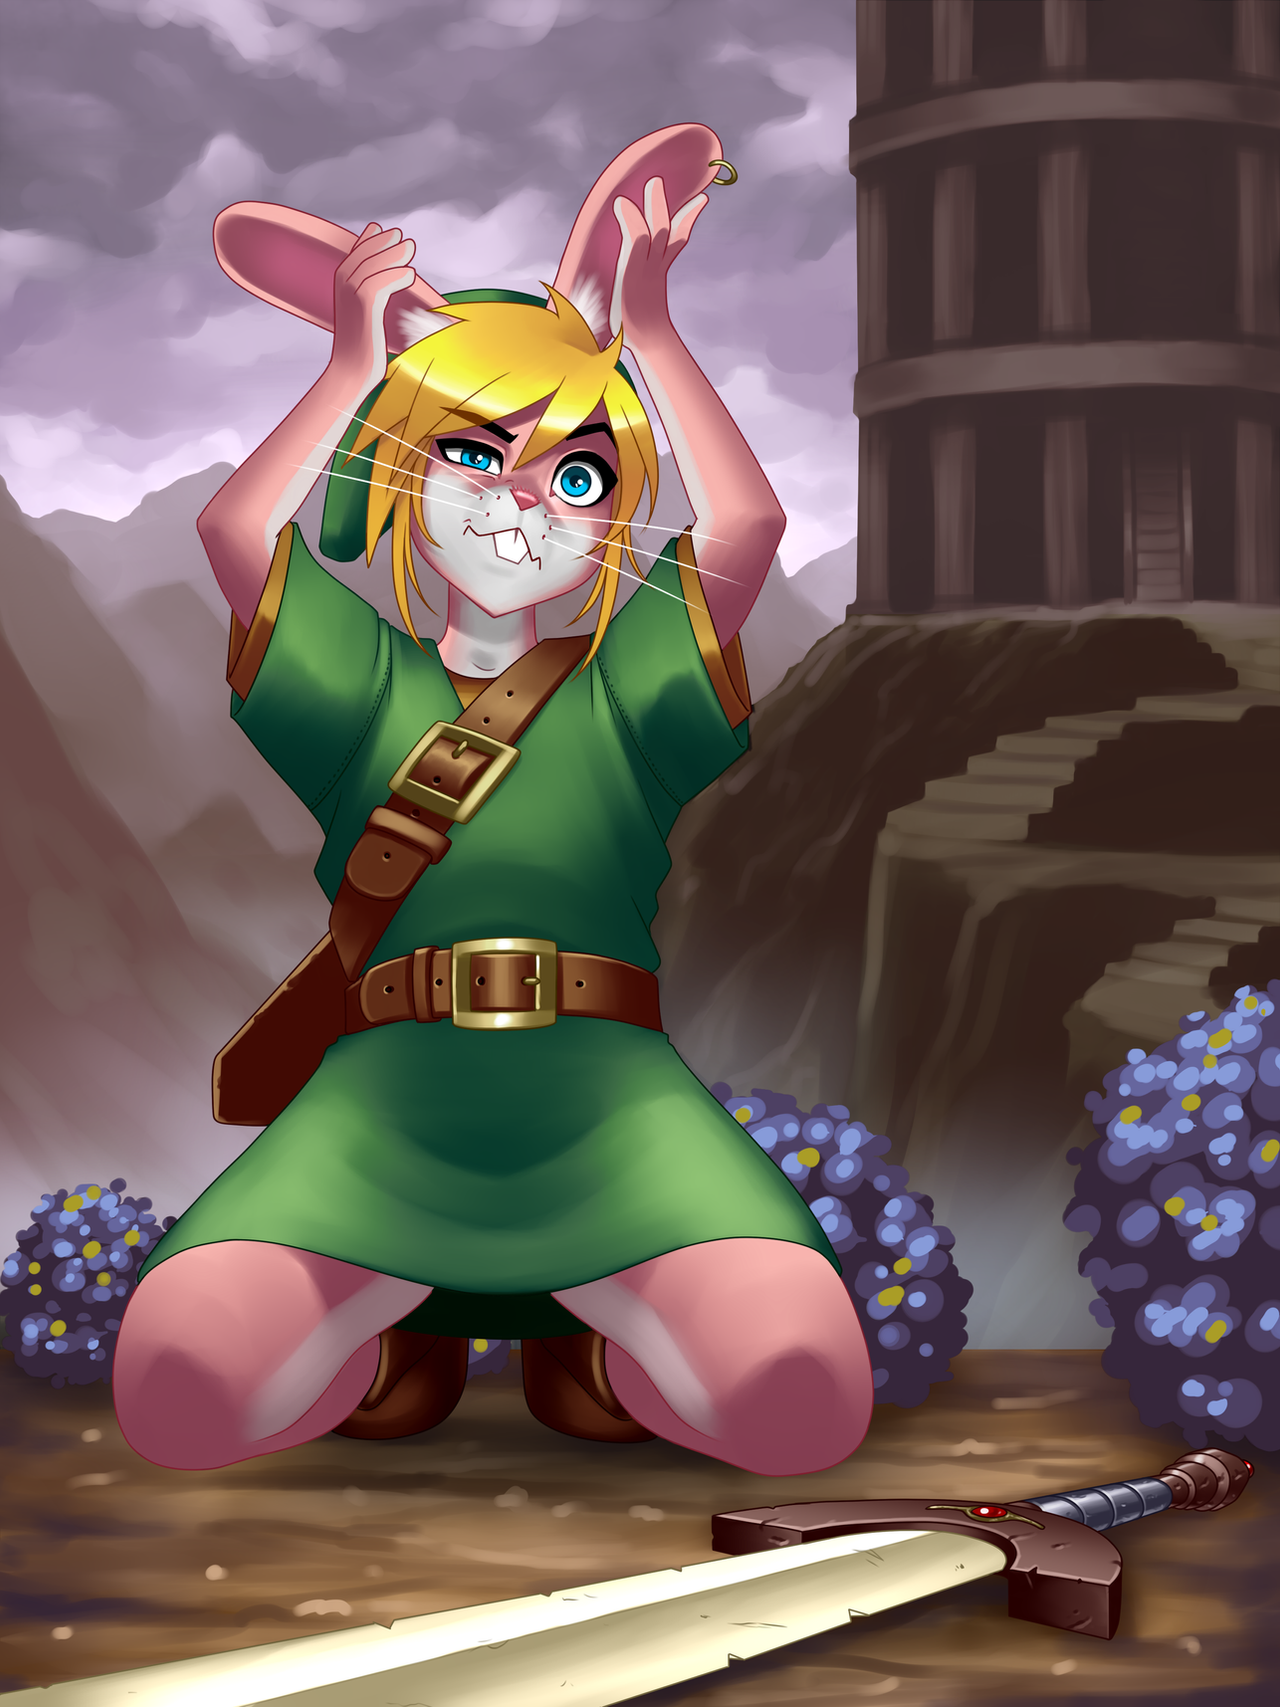 a_link_to_the_past___bunny_link_by_ronindude-d8l04du.png